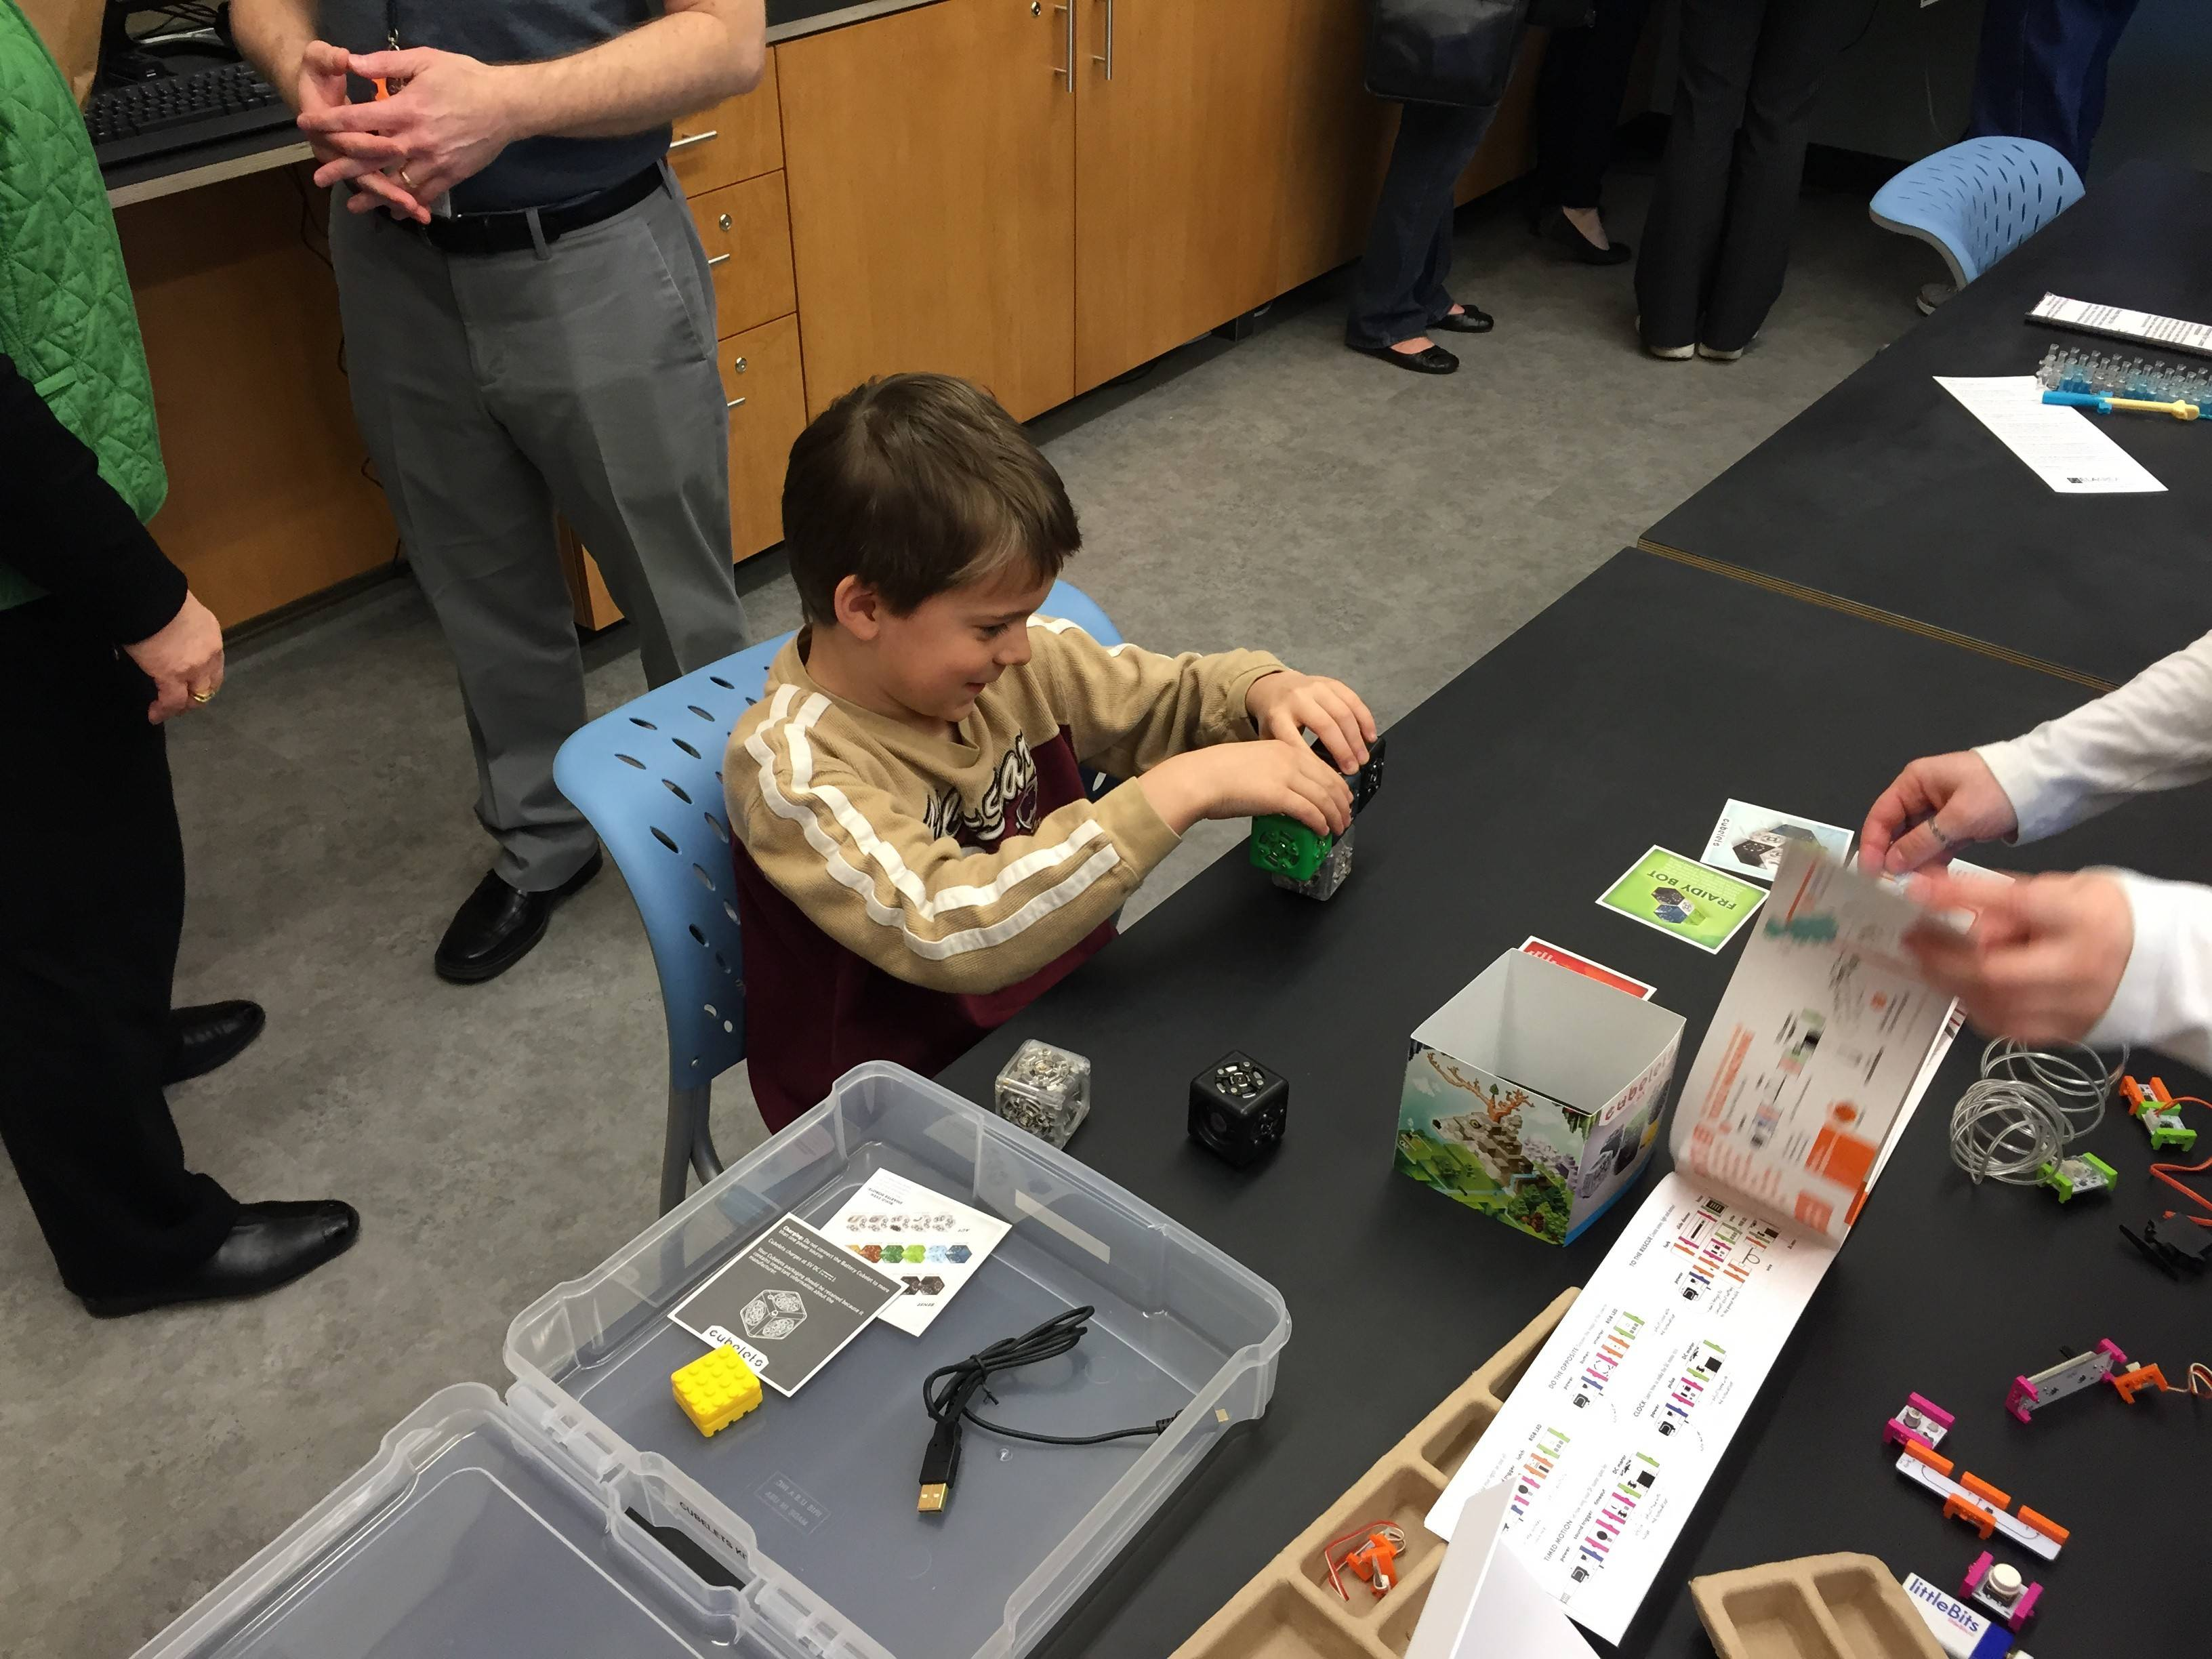 Eight-year-old Joey Polites works with Cubelets while visiting the Ela Area Public Library's new Forge makerspace.